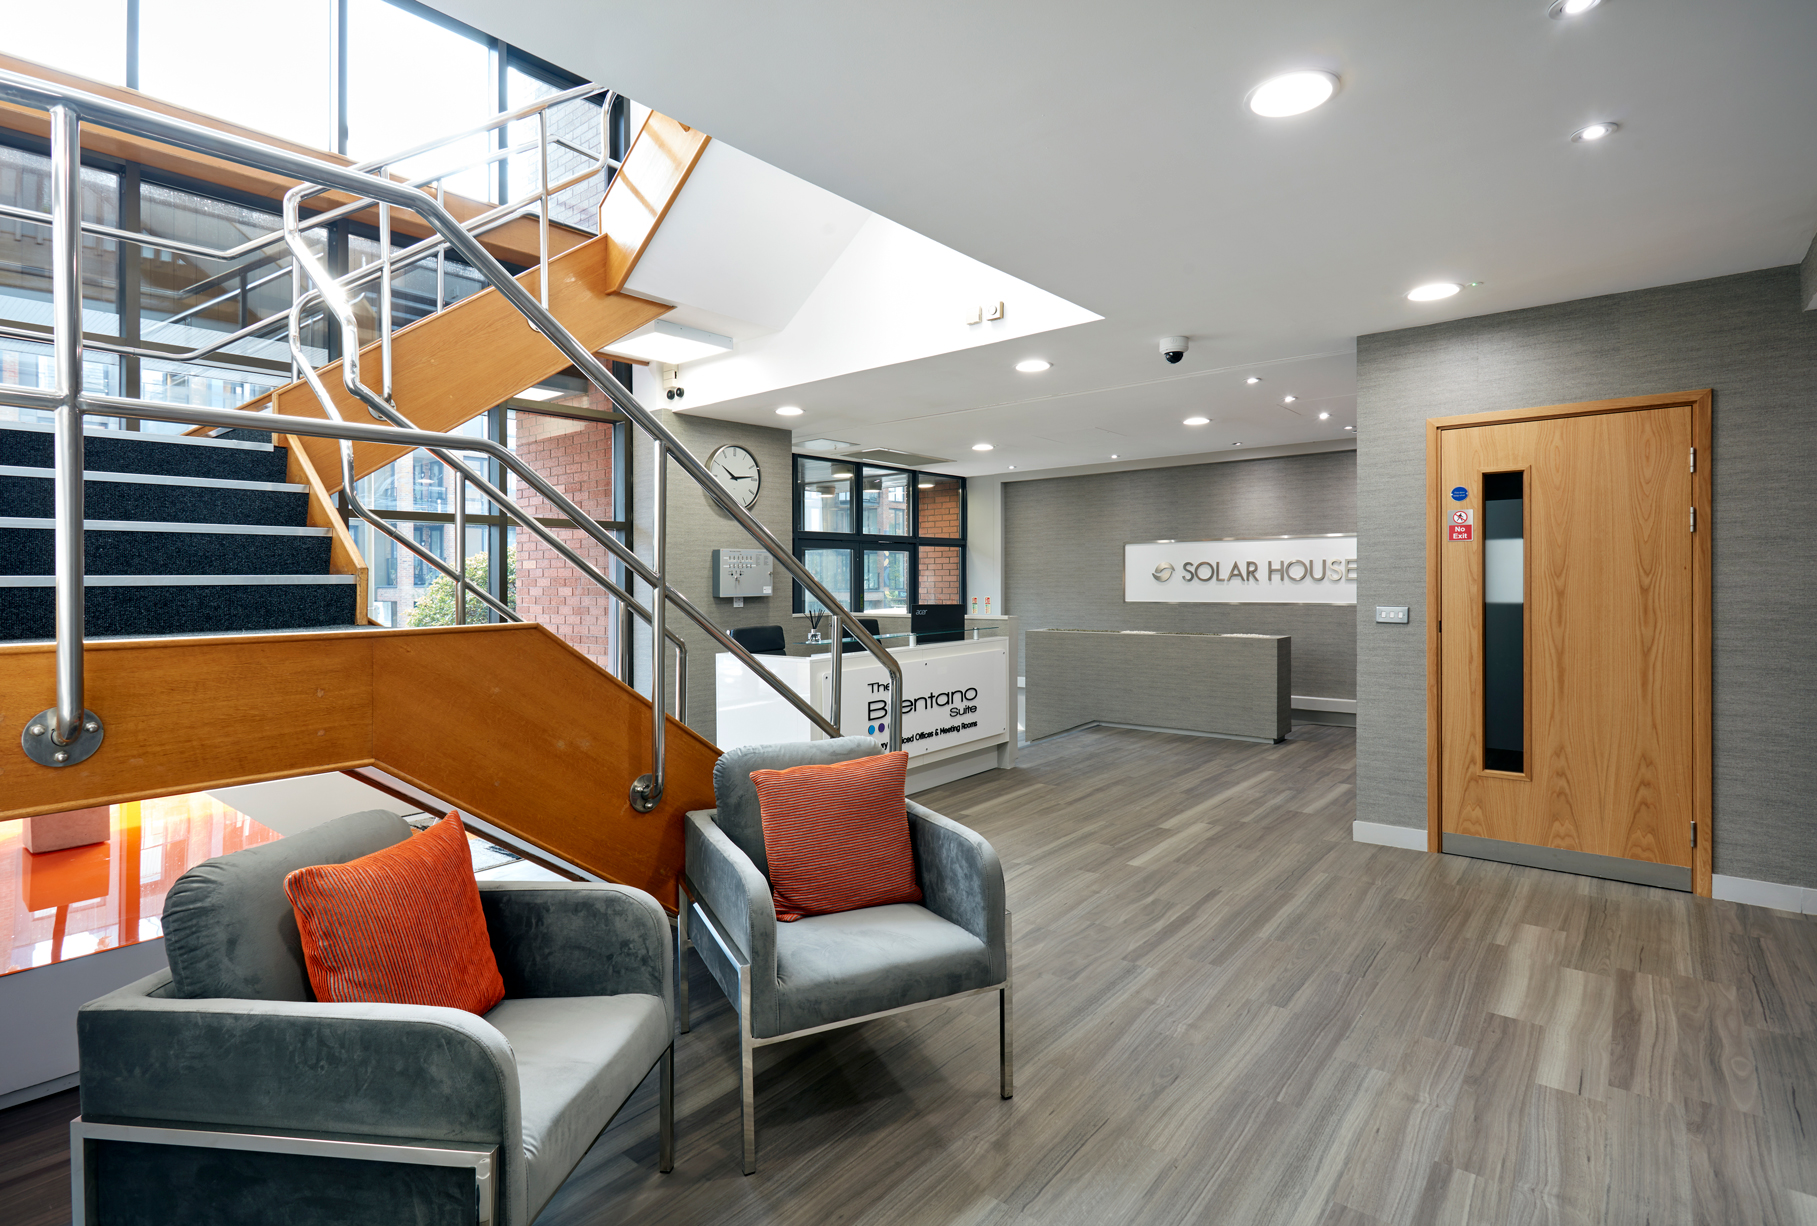 The Brentano Suite Finchley - Solar House - High St, N12 - North Finchley